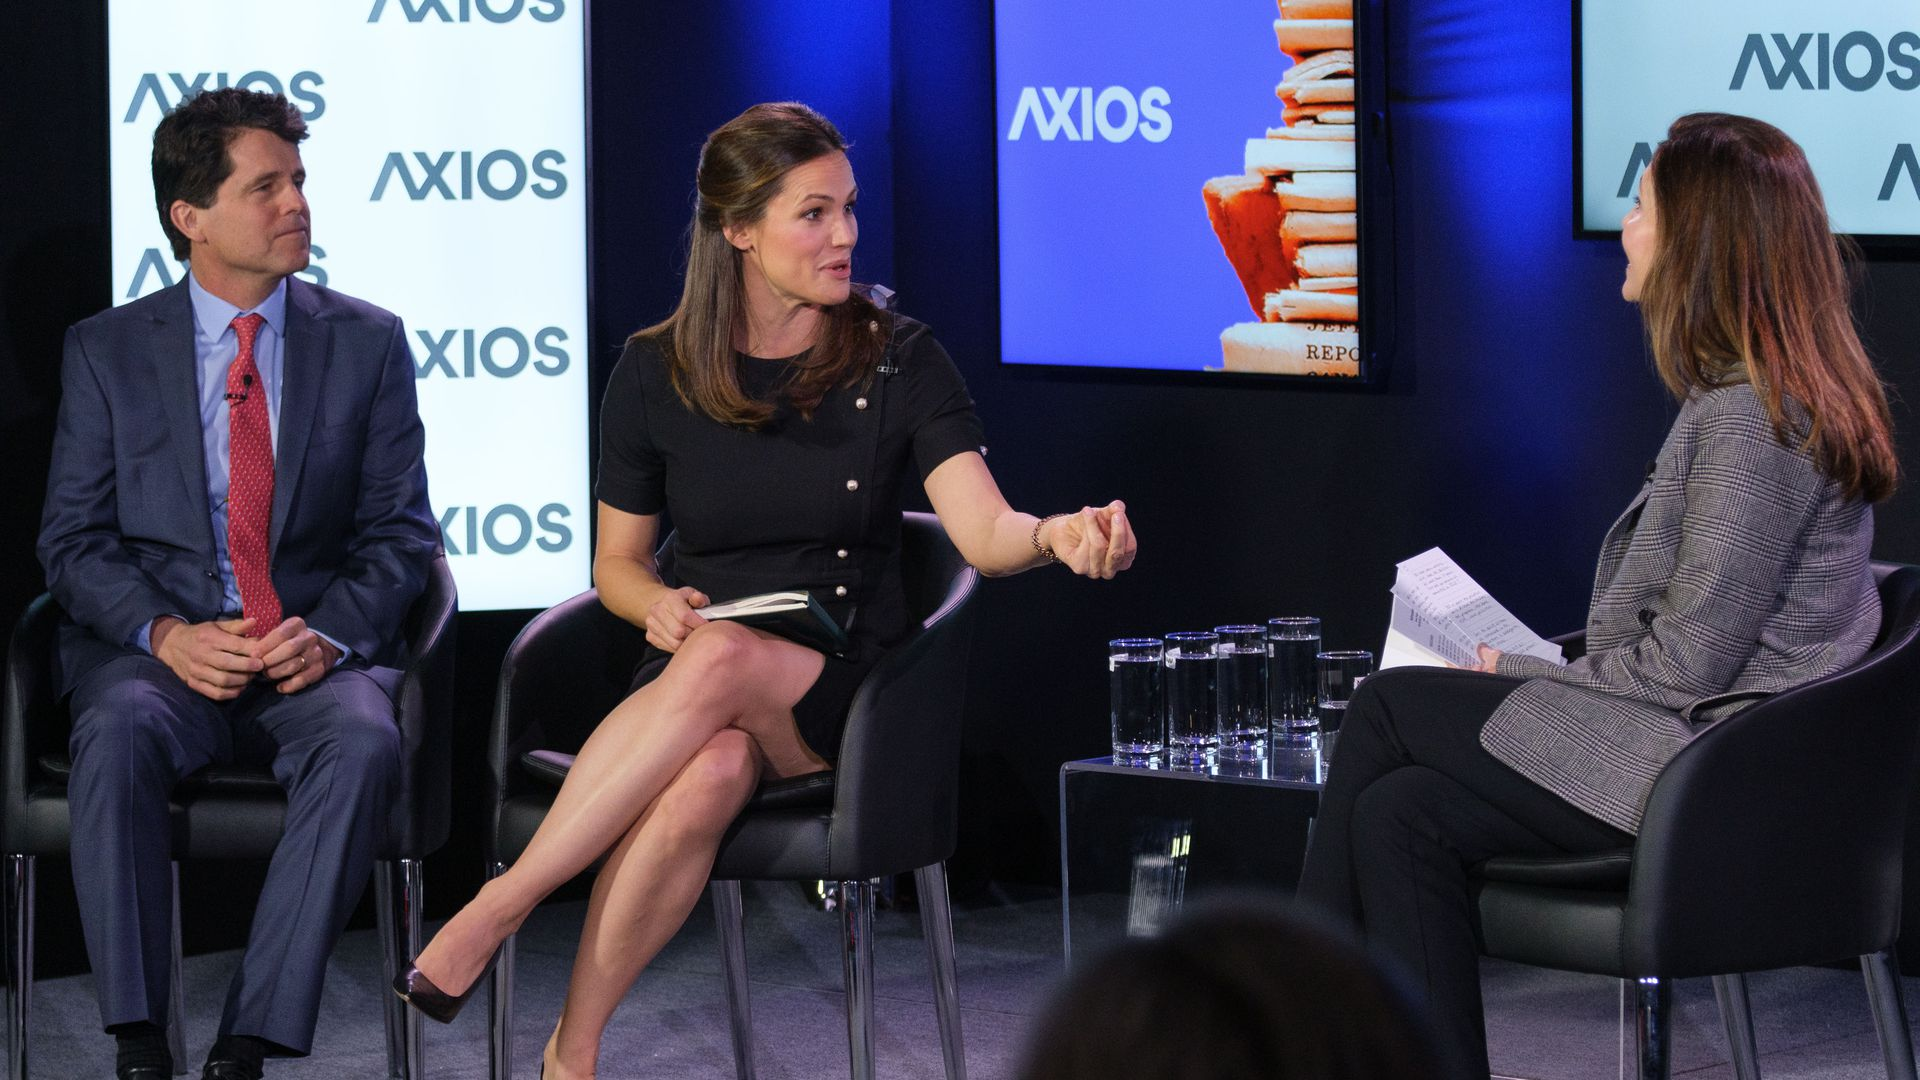 Save the Children's Mark Shriver and Jennifer Garner in conversation with Axios Executive Vice President Evan Ryan